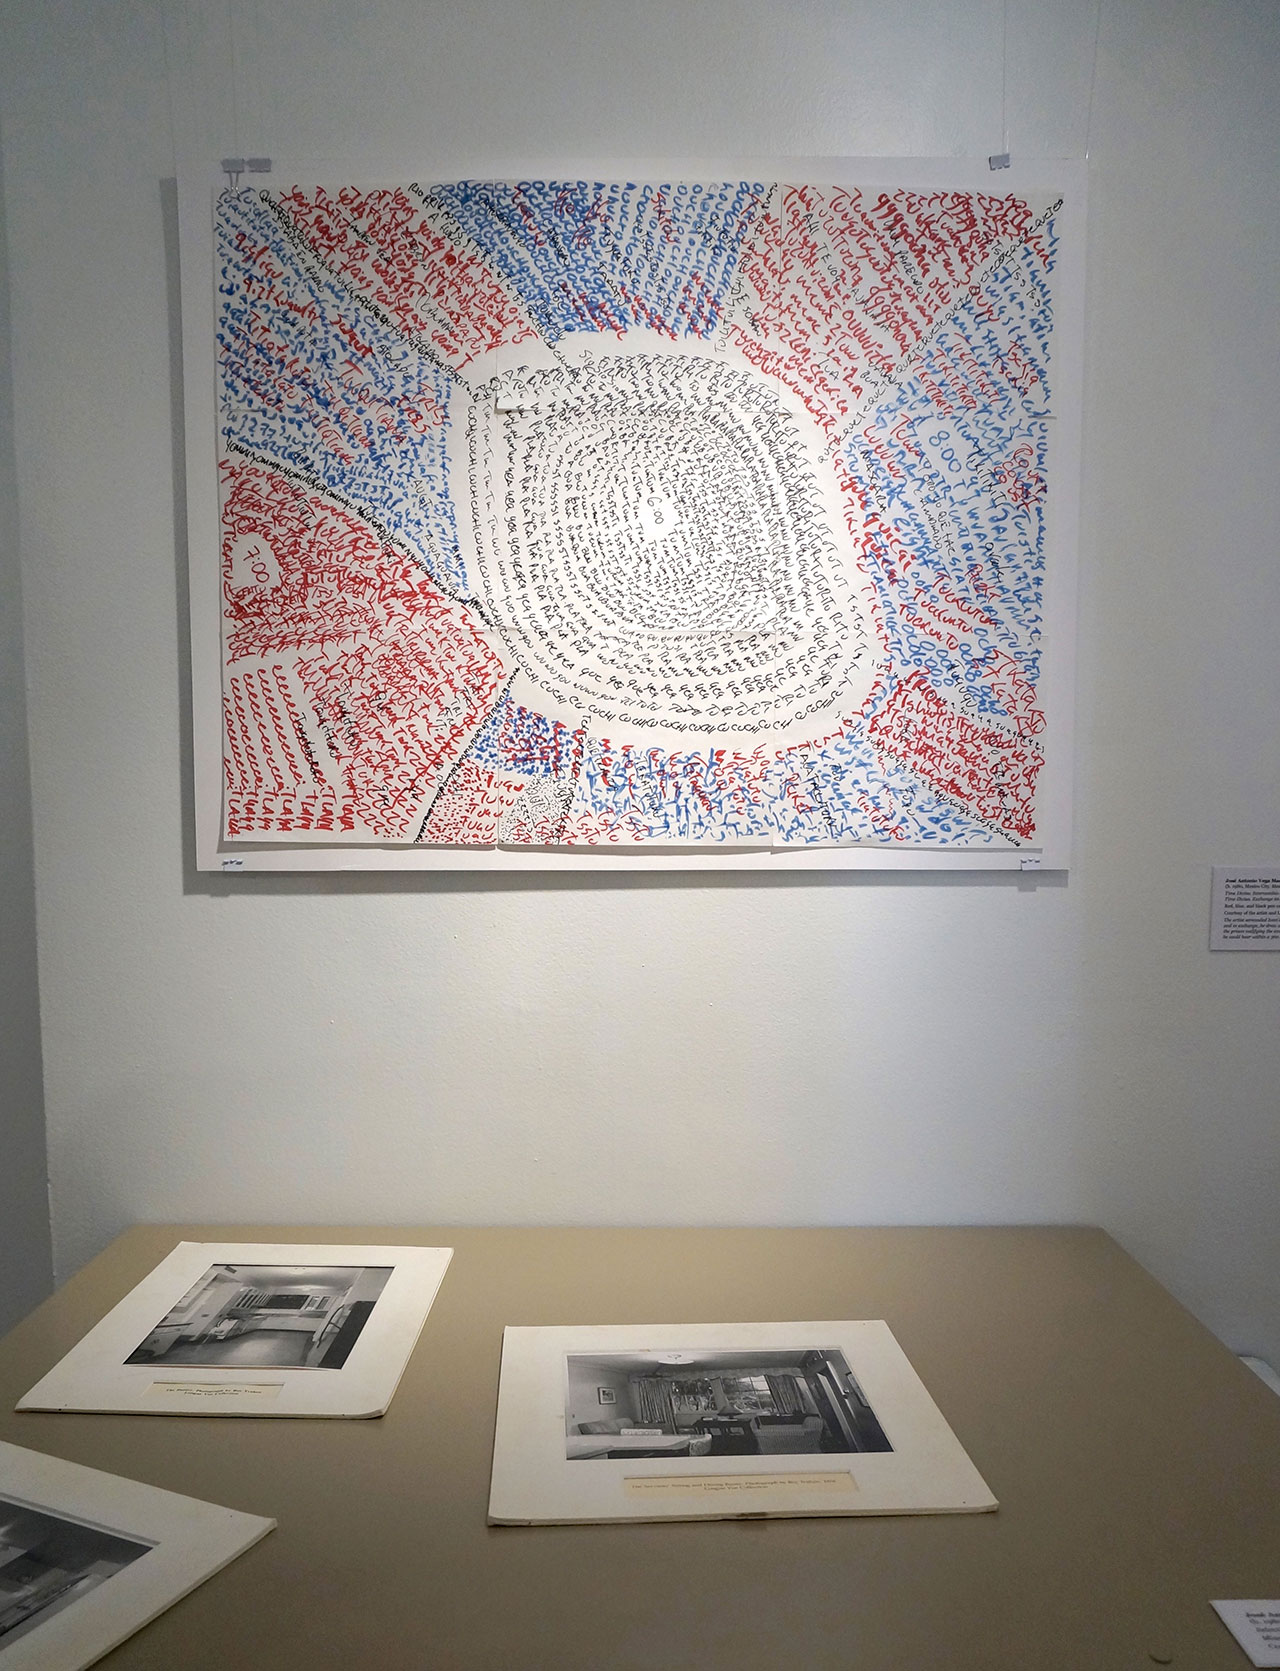 "José Antonio Vega Macotela, ""Time Divisa. Intercambio 66"" (2007), red, blue, and black pen on paper. ""The artist serenaded Ivan's mother at her home and in exchange, he drew an acoustic map of the prison codifying the environmental sounds he could hear within a 360 degree radius."" (click to enlarge)"